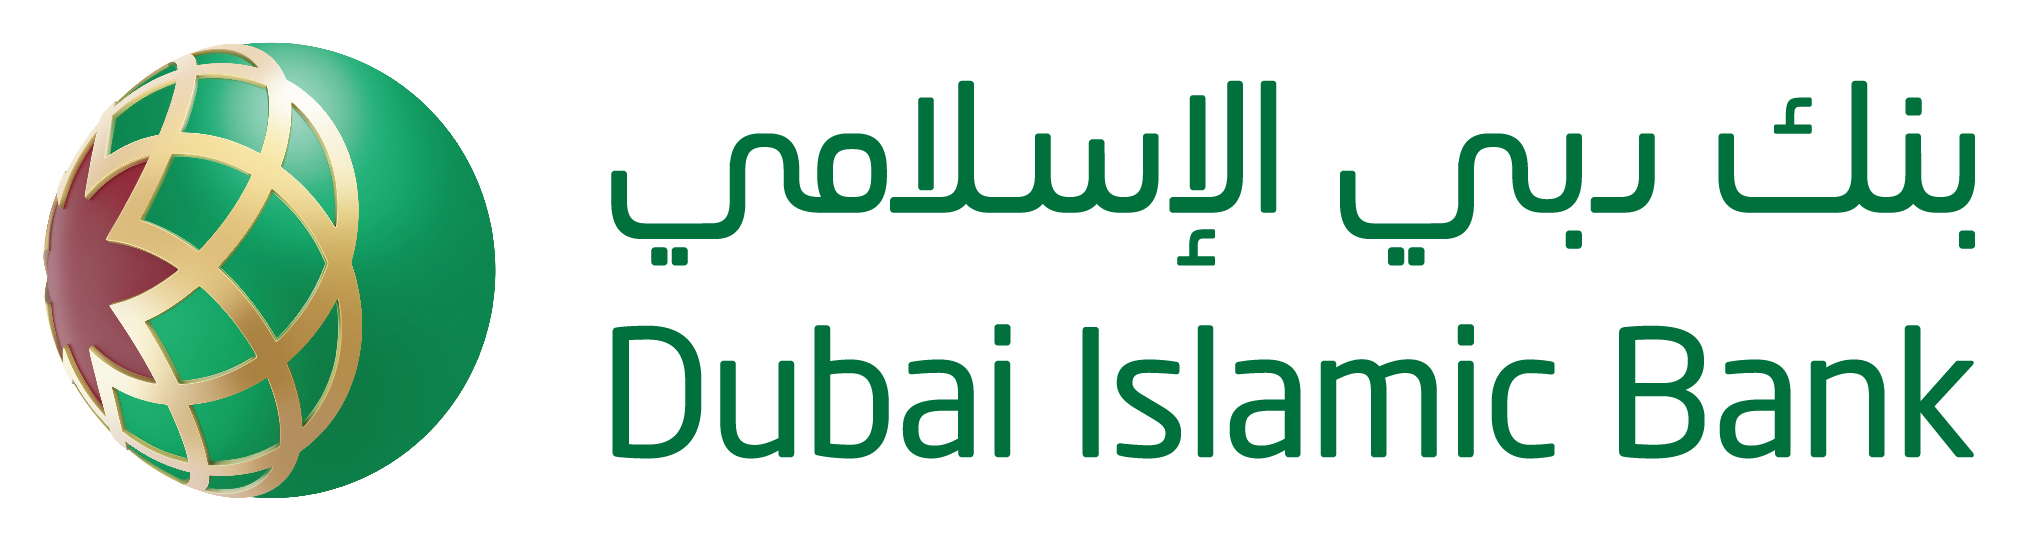 Dubai Islamic Bank - Al Islami Used Car Finance for Self Employed